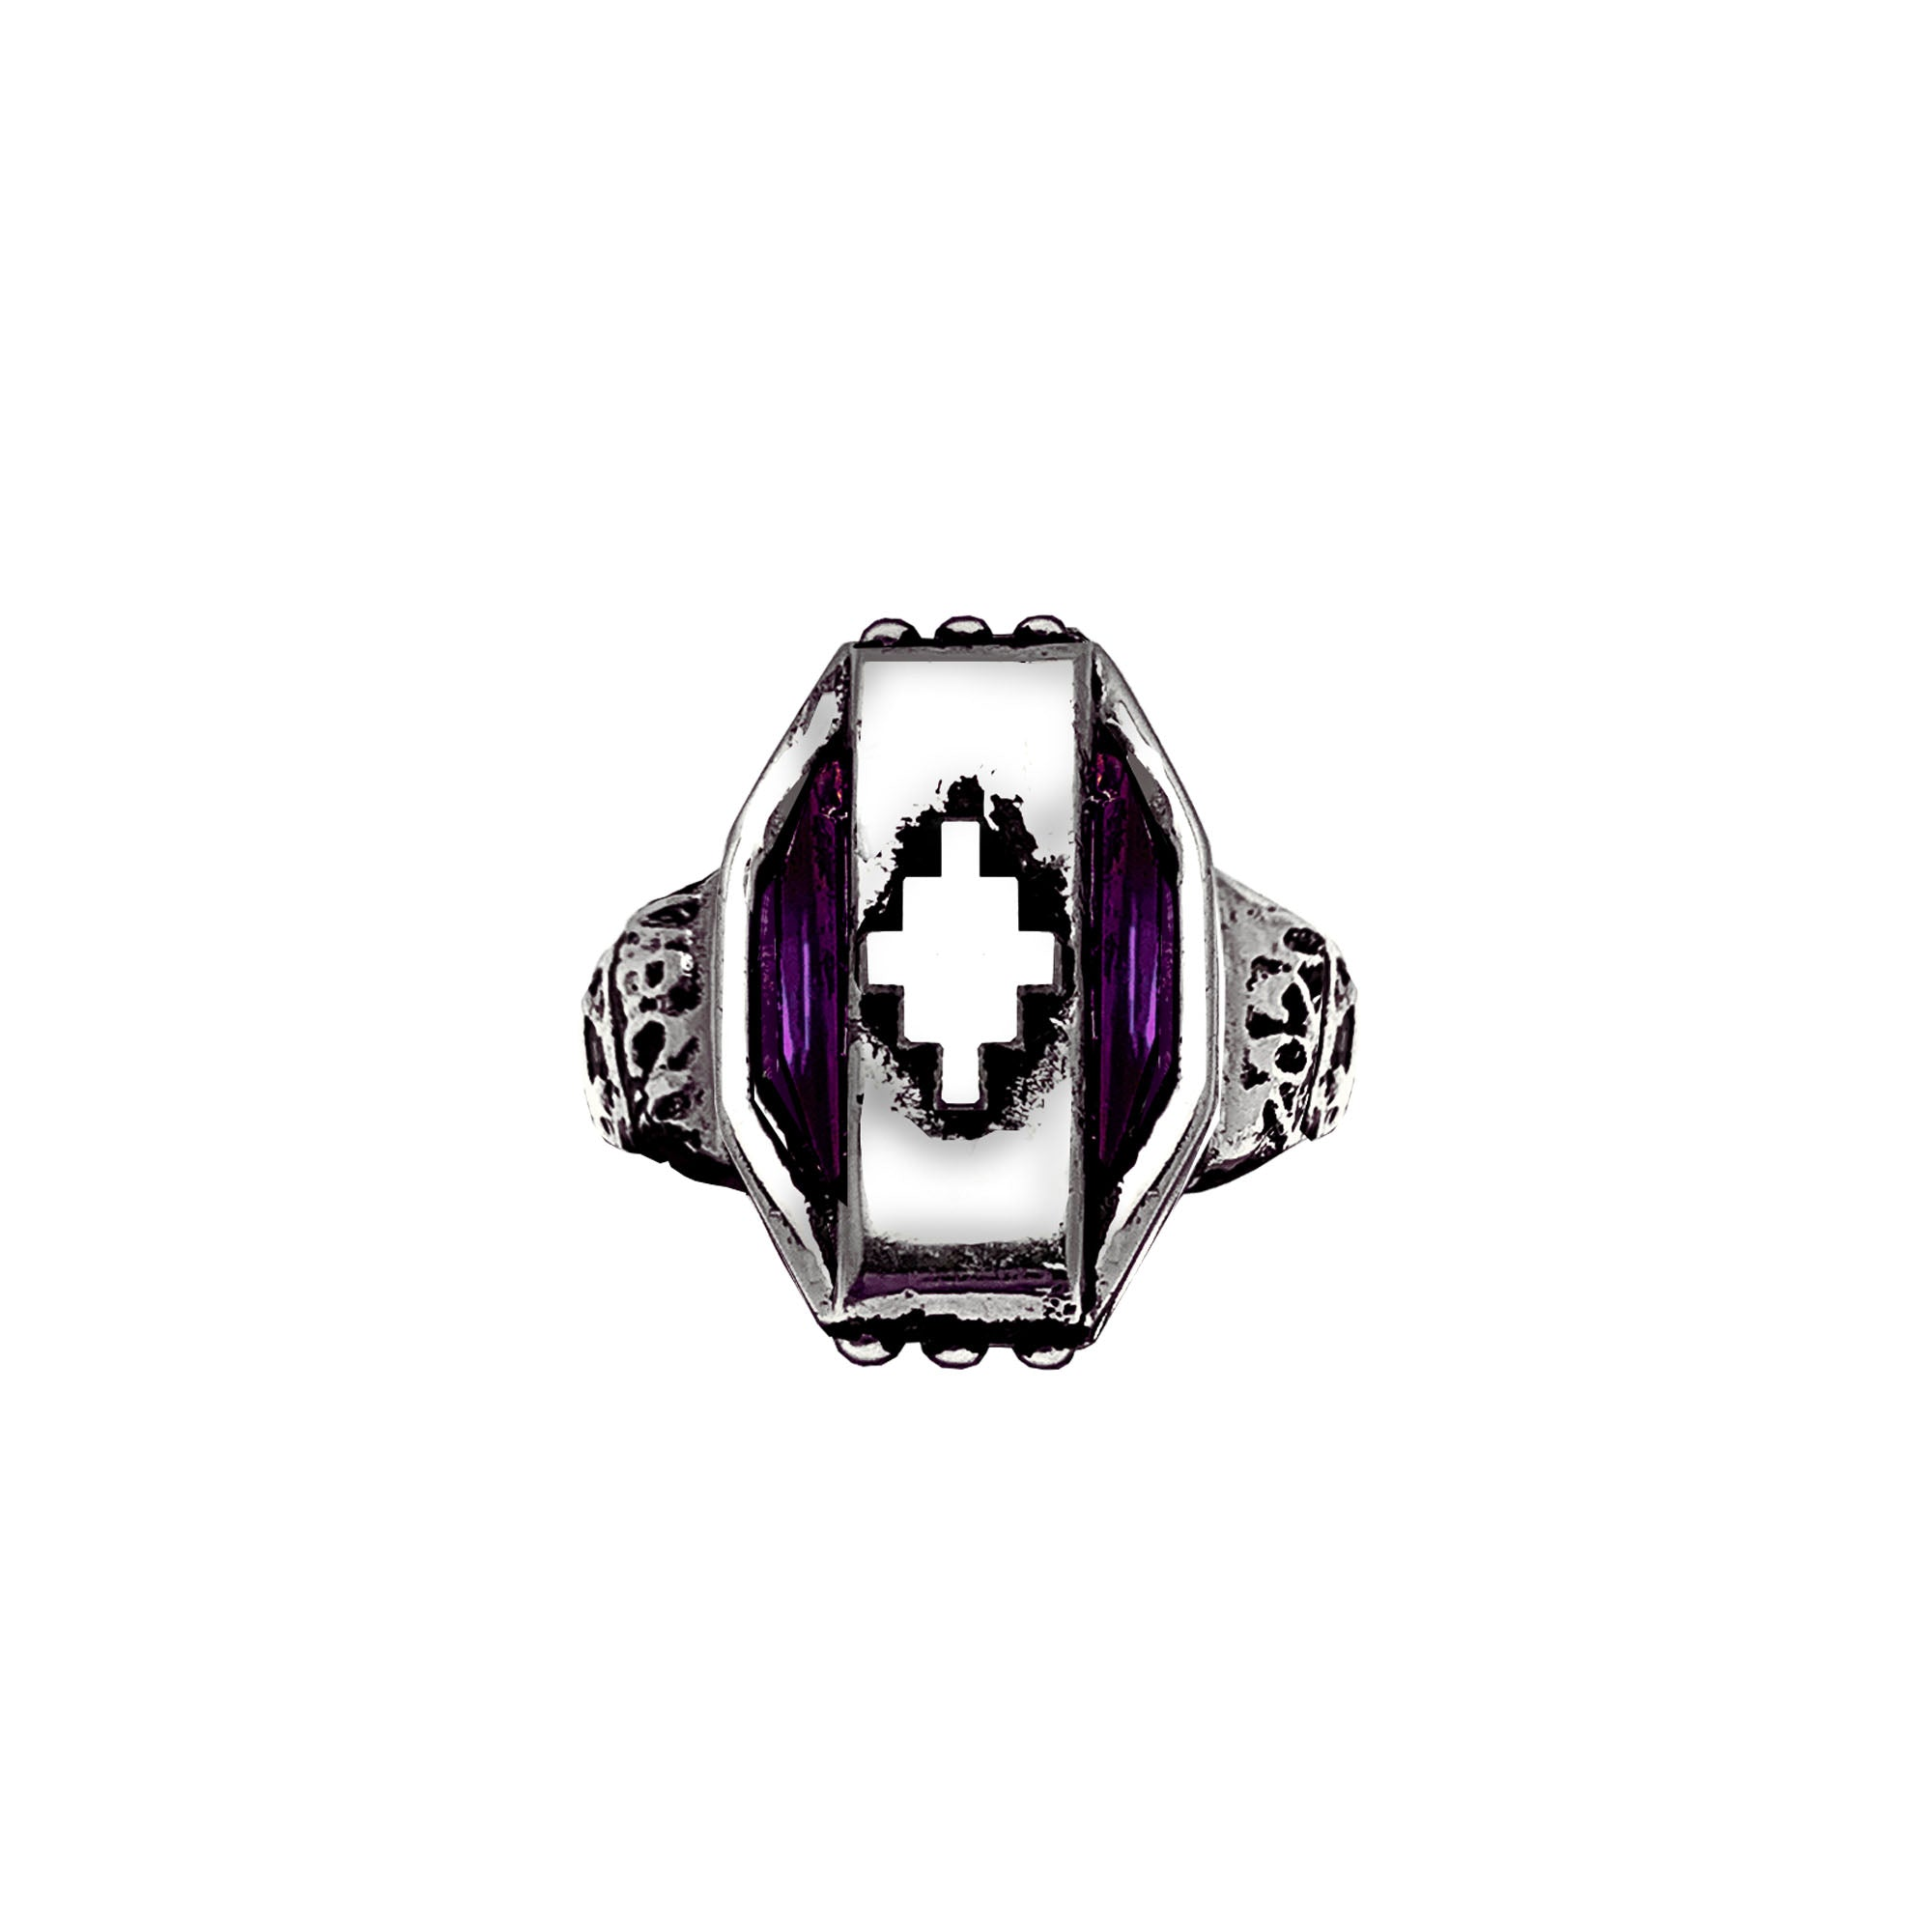 THE CREST RING